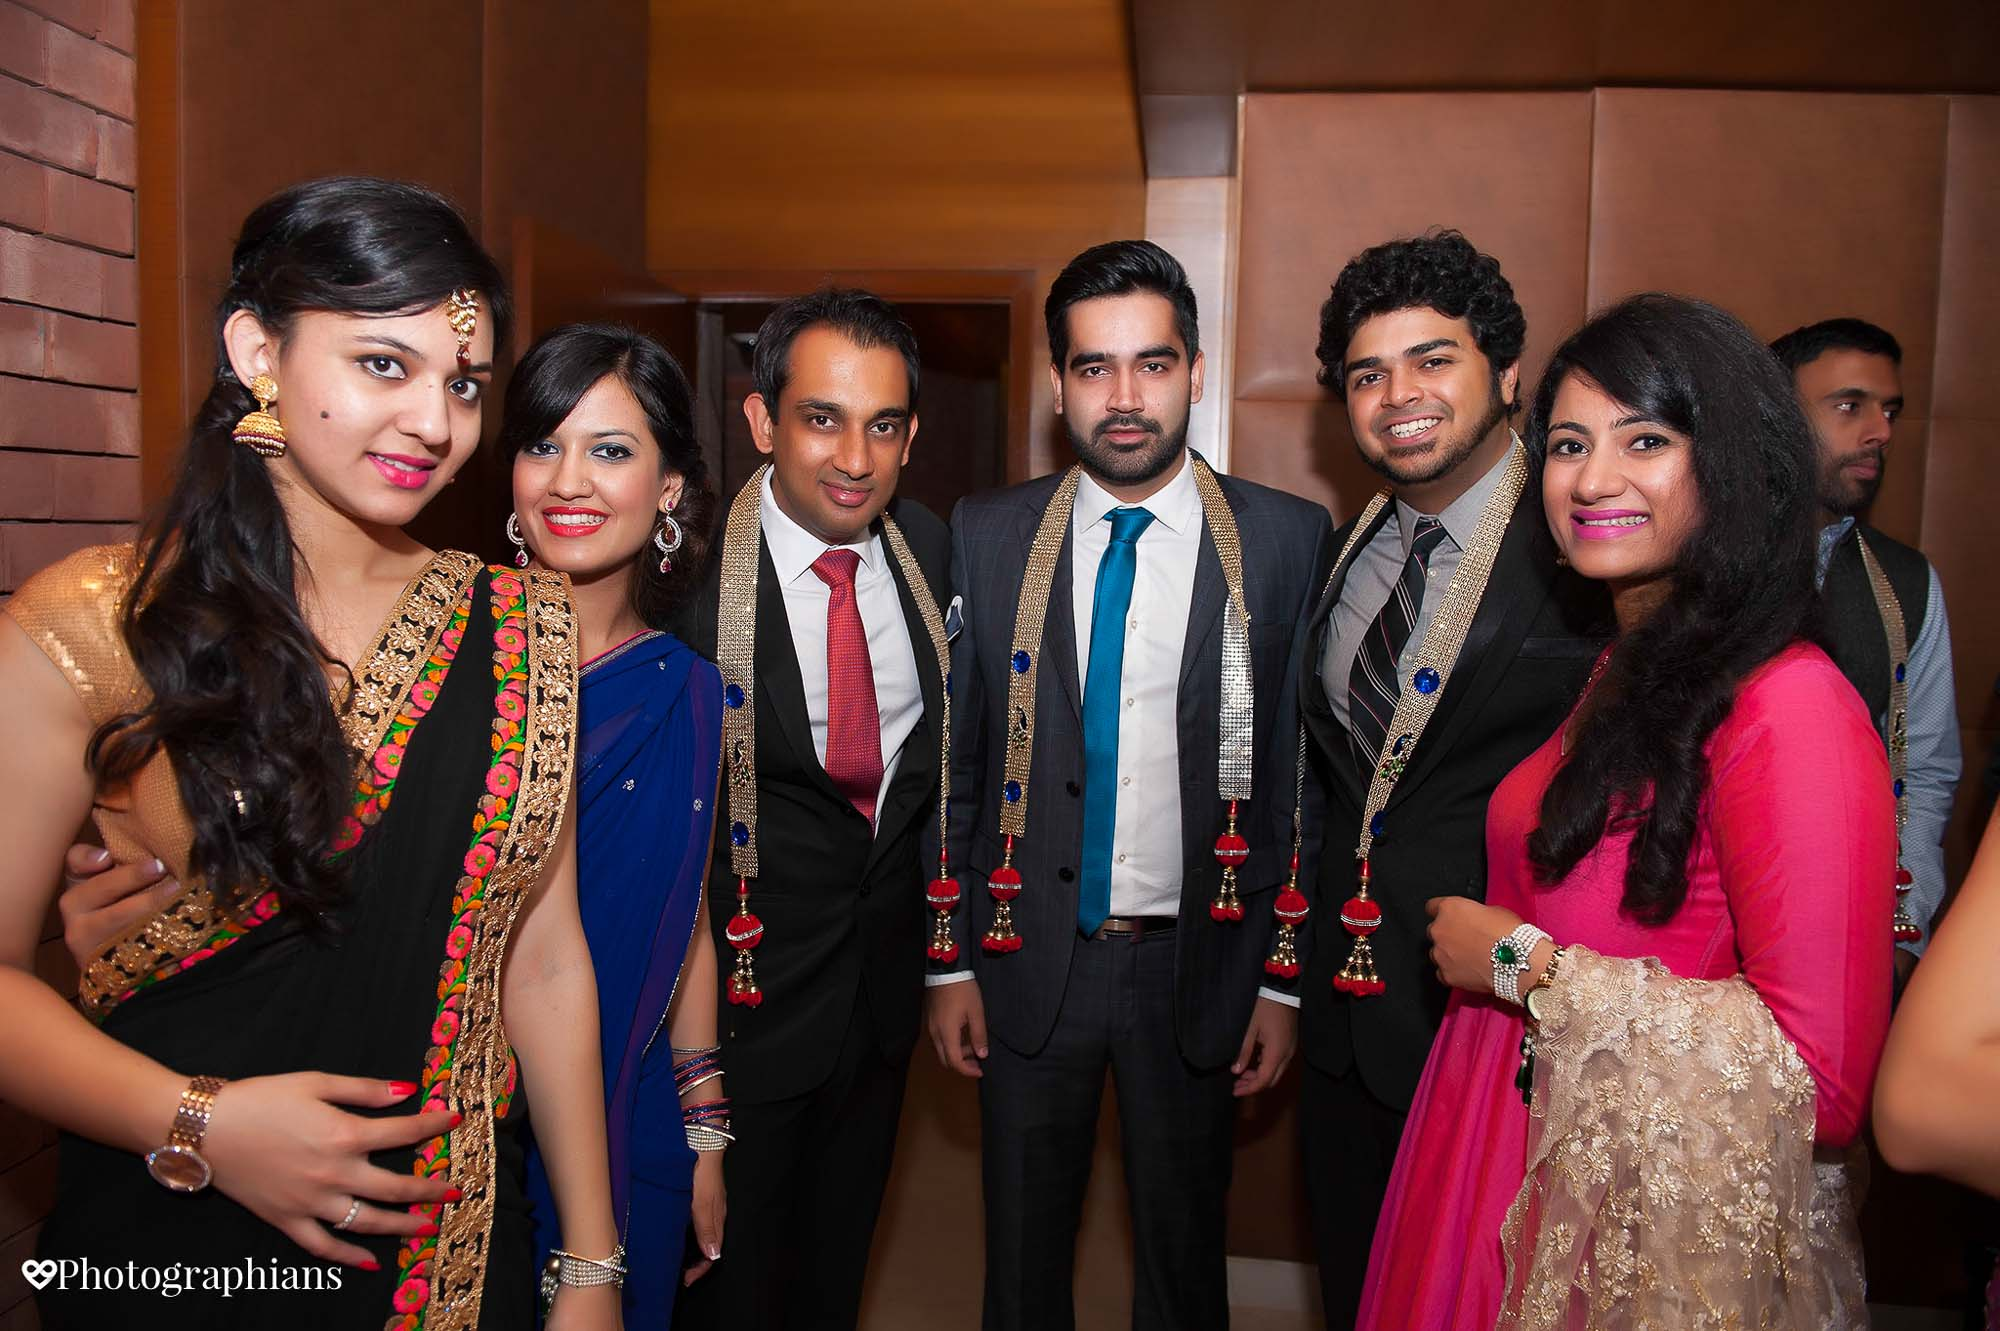 Punjabi_Marwari_Wedding_Kolkata_Photographians_-VIDHI-162